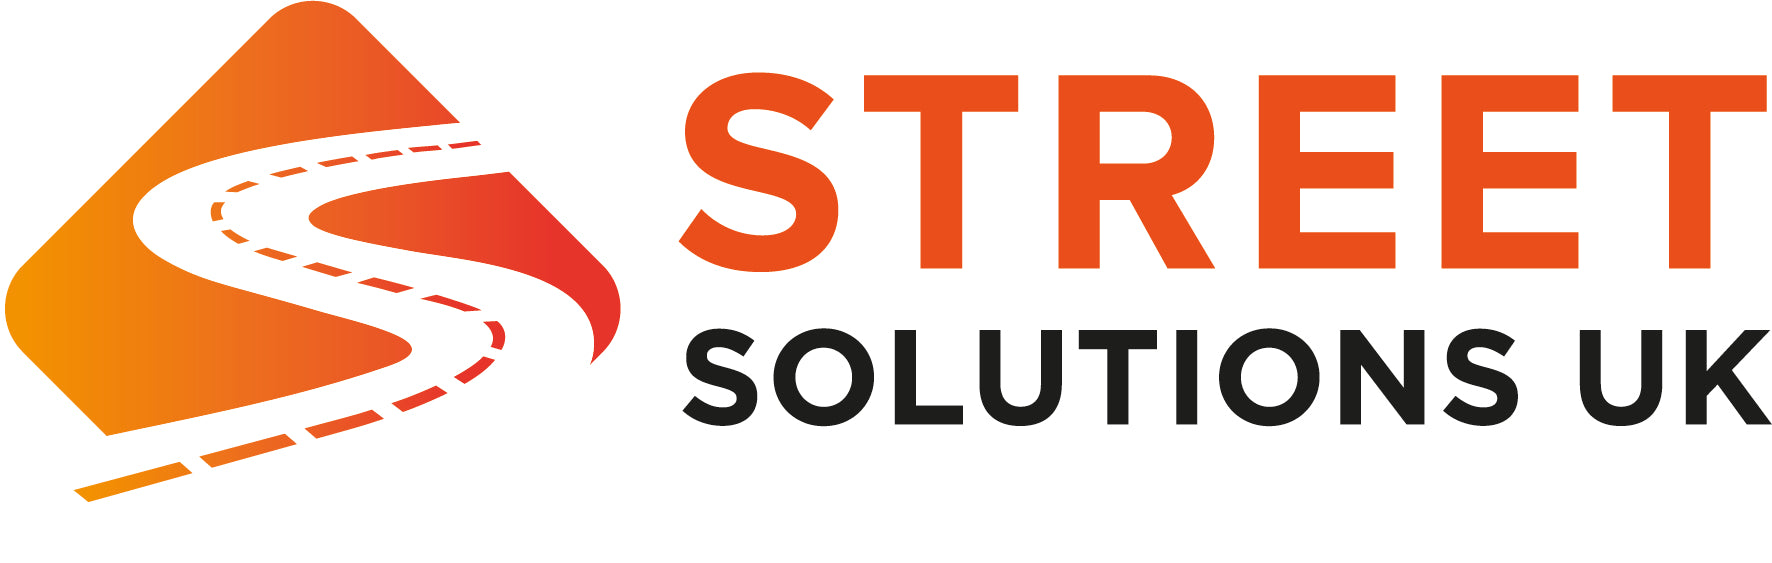 Street Solutions UK